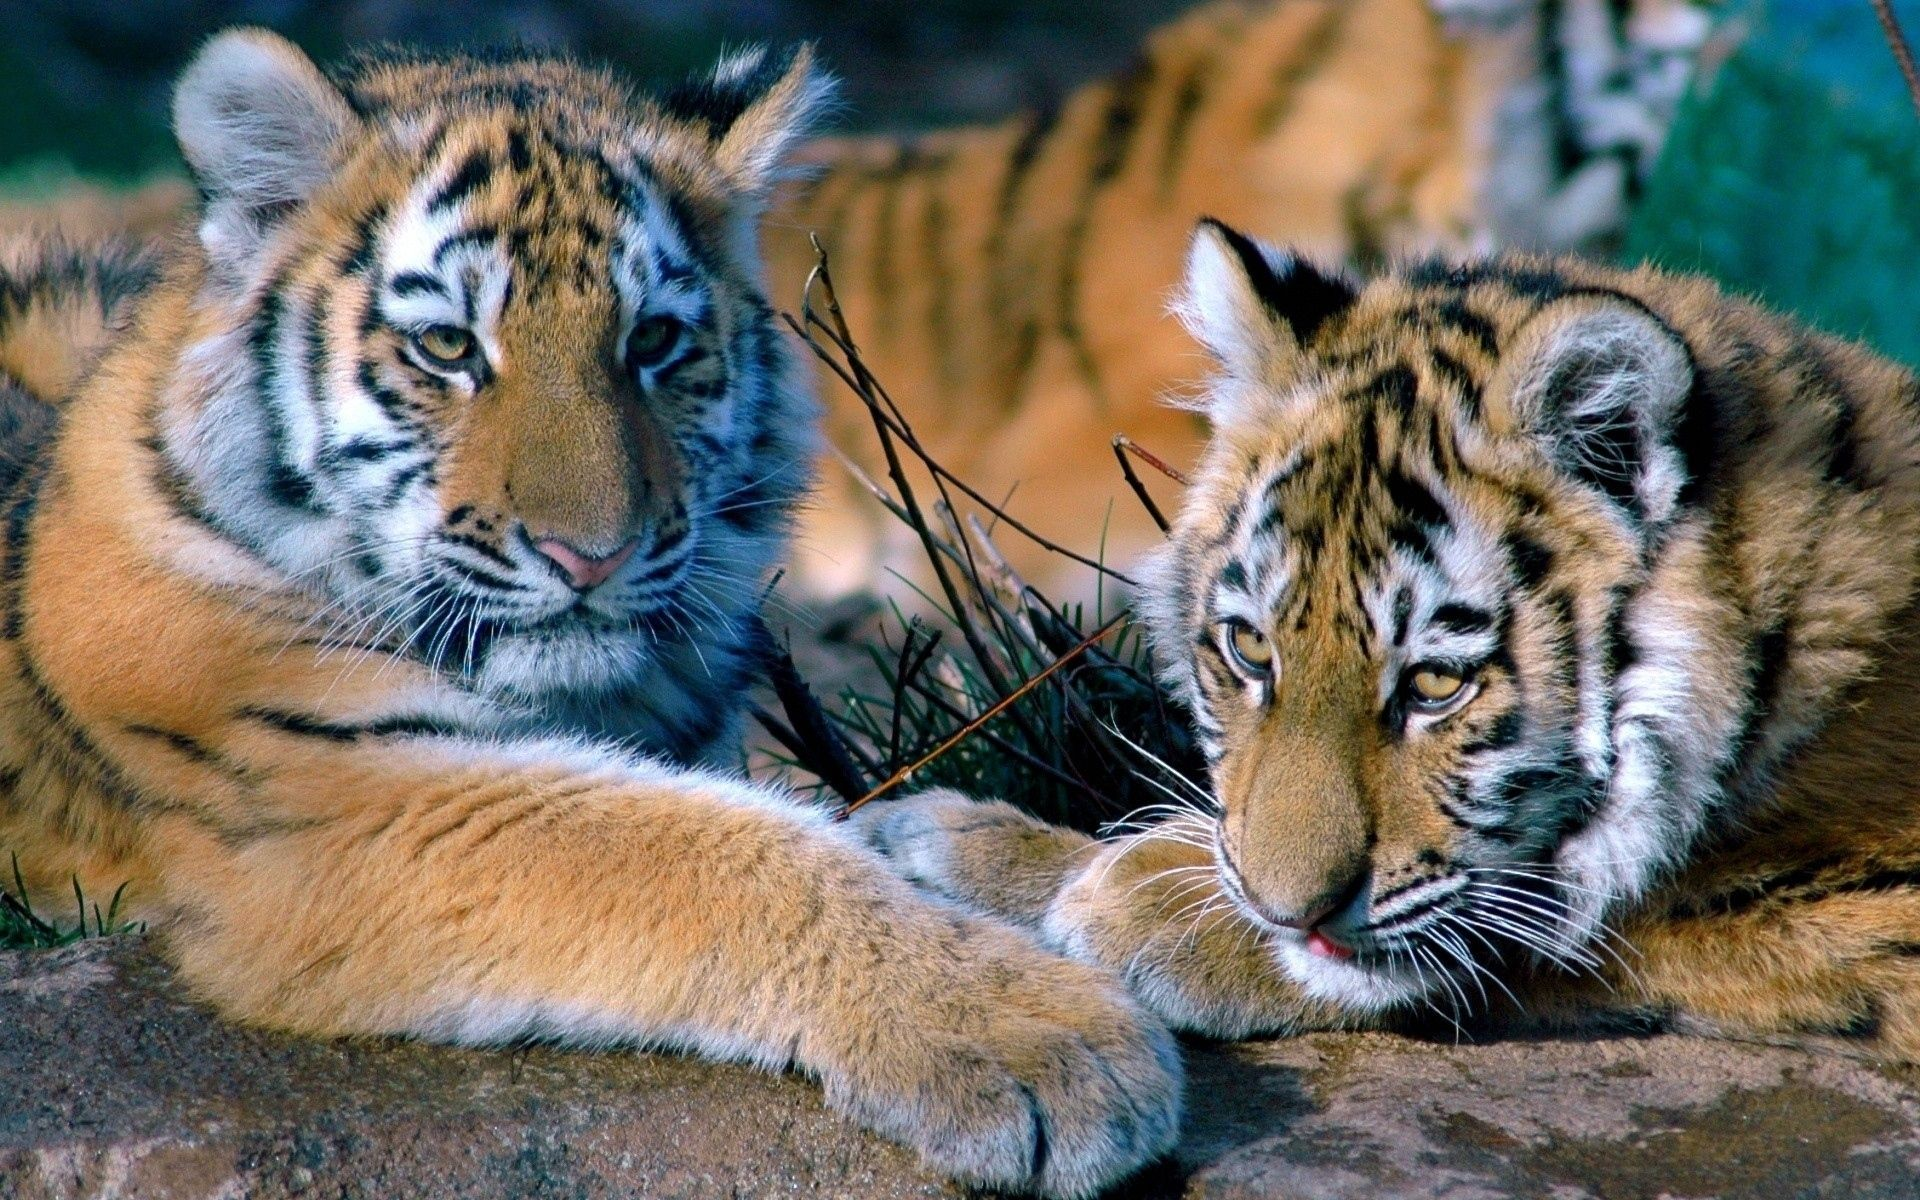 Two Tigers, Best Wallpaper